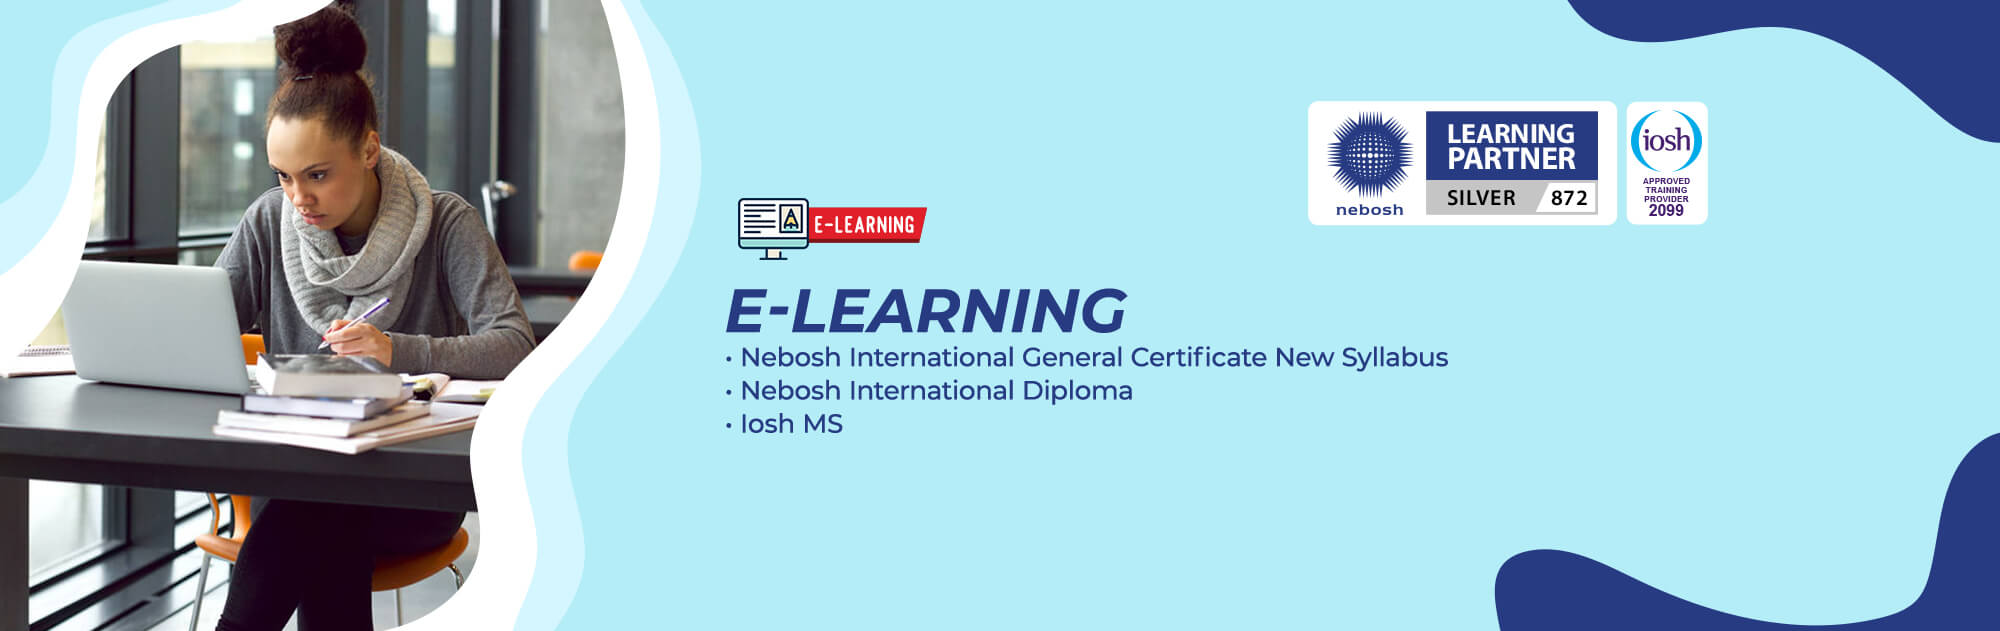 eLearning Courses - NEBOSH IGC, NEBOSH International Diploma, IOSH MS